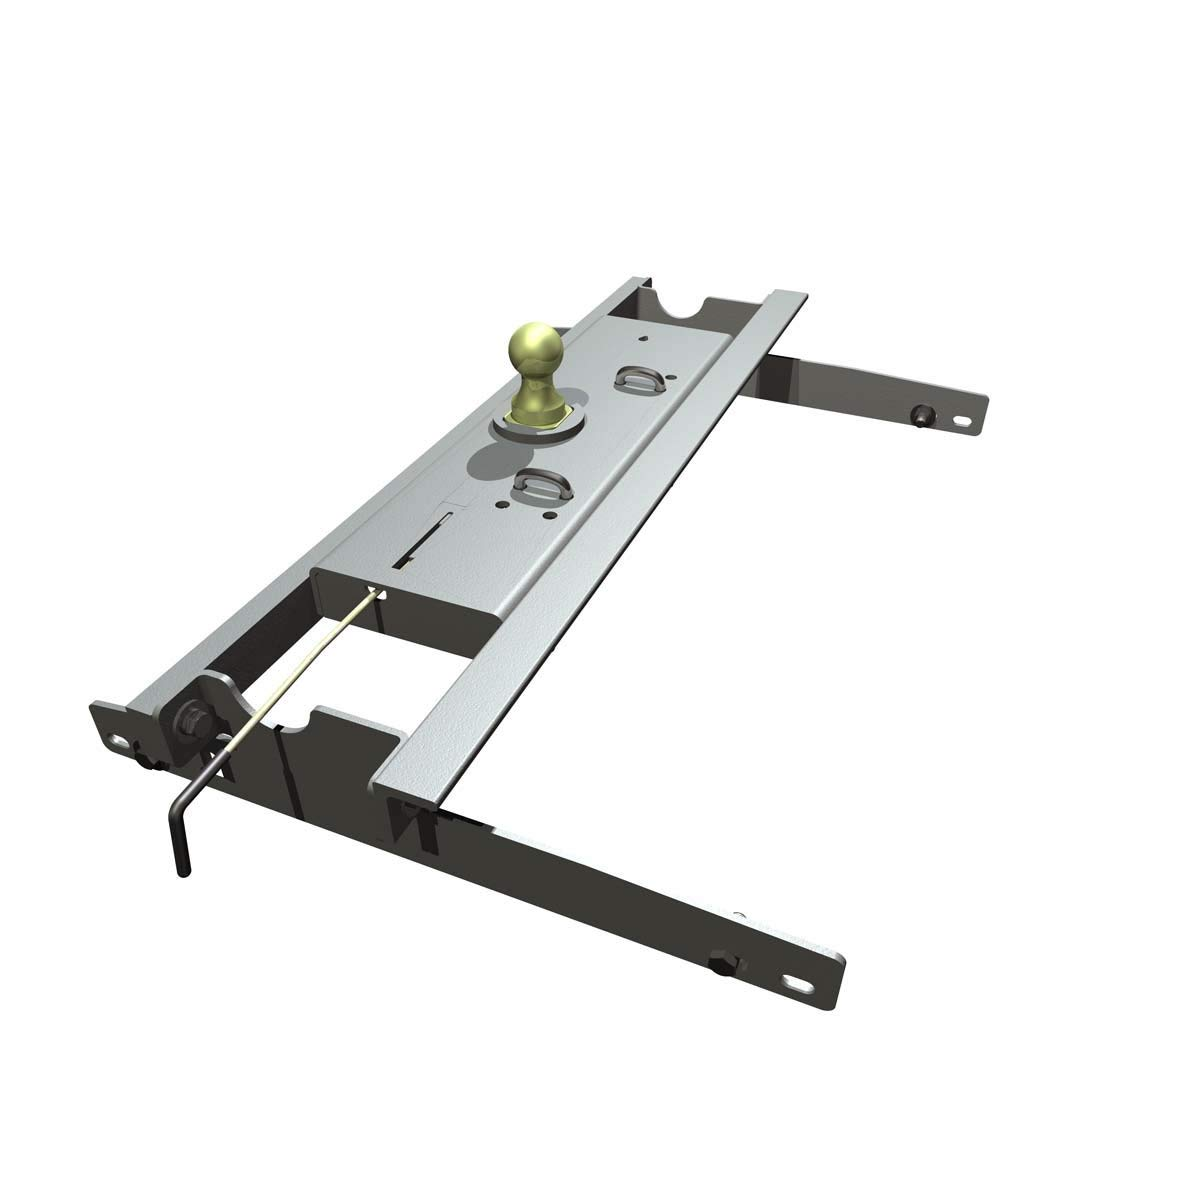 B&W Trailer Hitches GNRK1394 Gooseneck Hitch by B&W Trailer Hitches